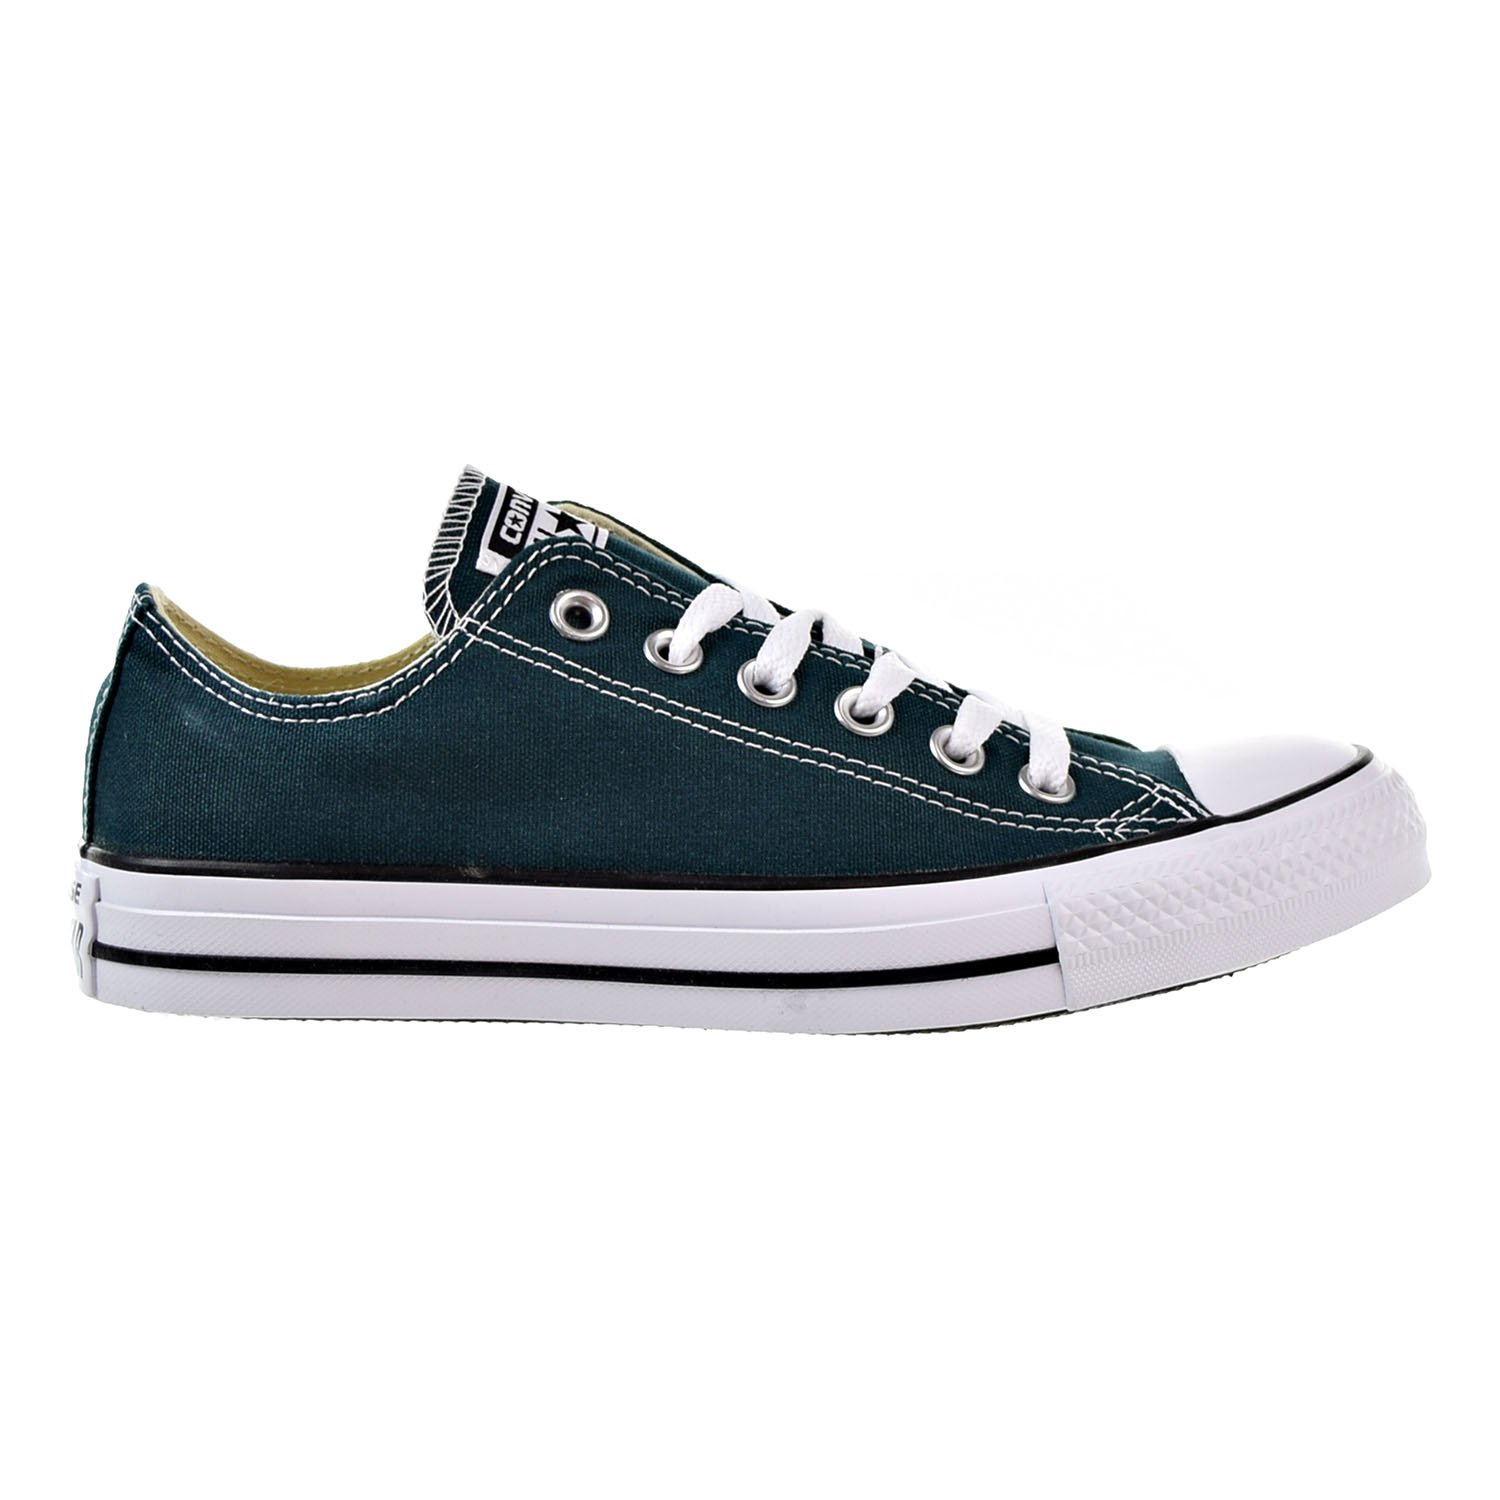 Converse Chuck Taylor All Star OX Men's Shoes Dark Atomic Teal 157647f (4.5 D(M) US)